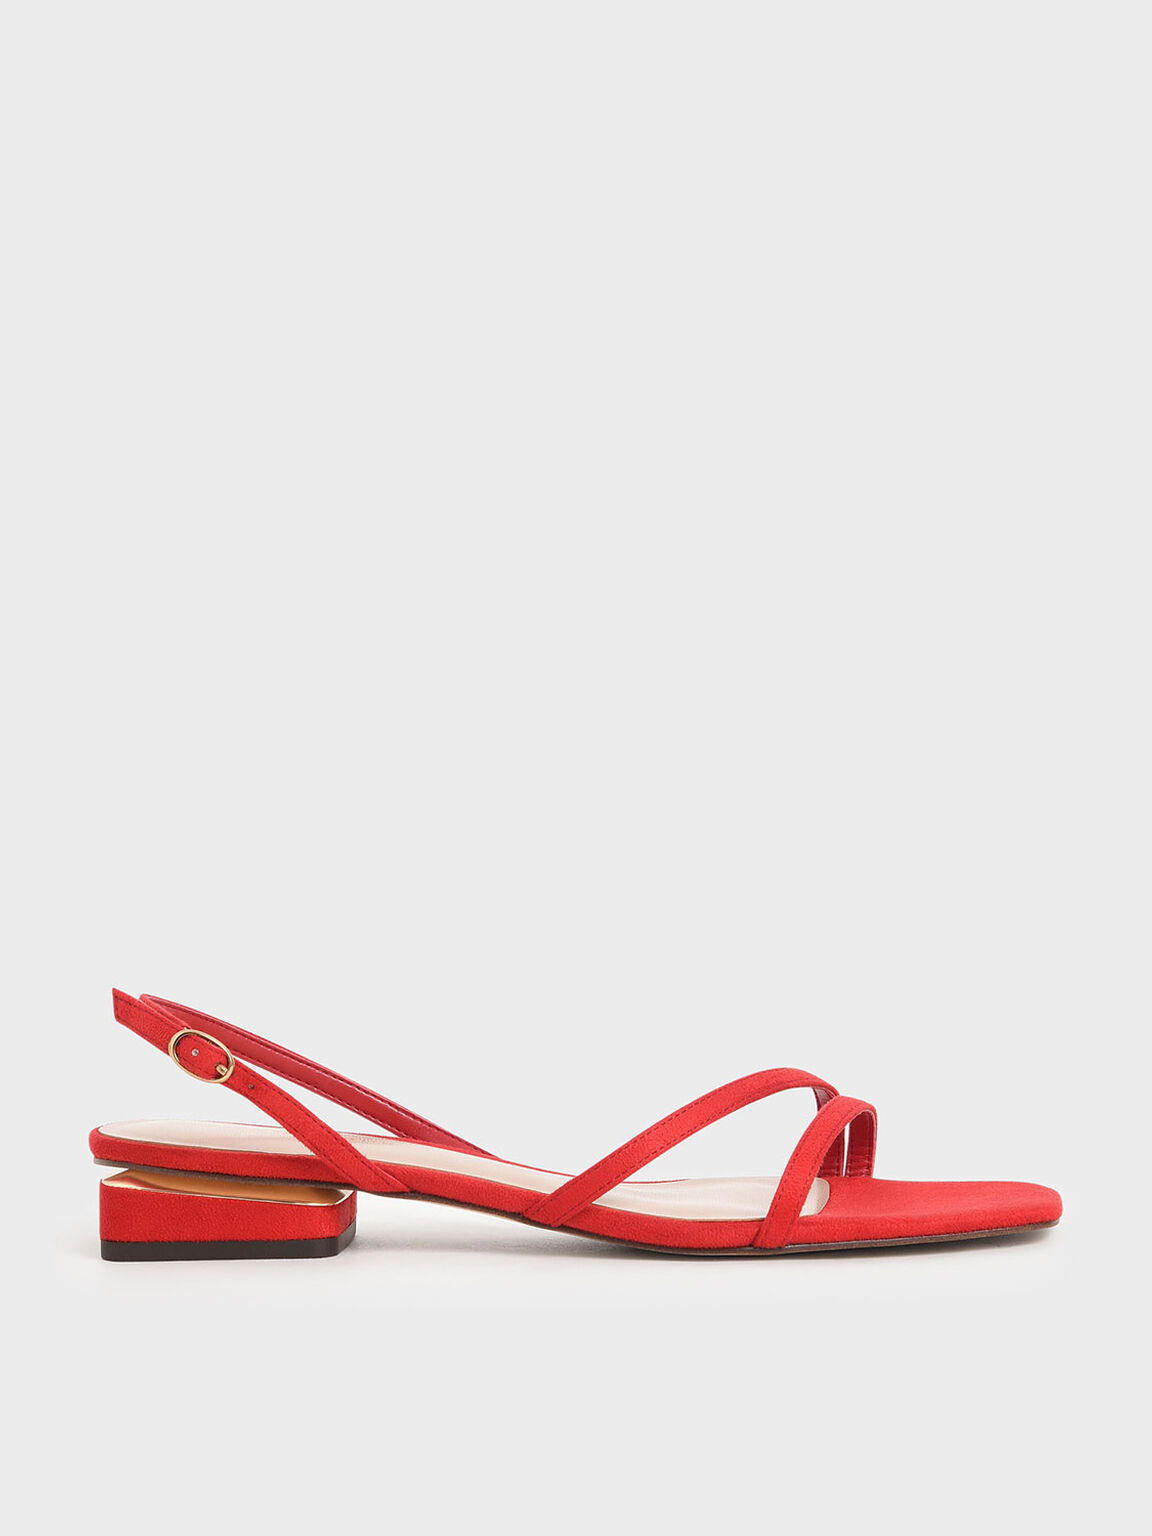 Textured Strappy Slingback Heels, Red, hi-res